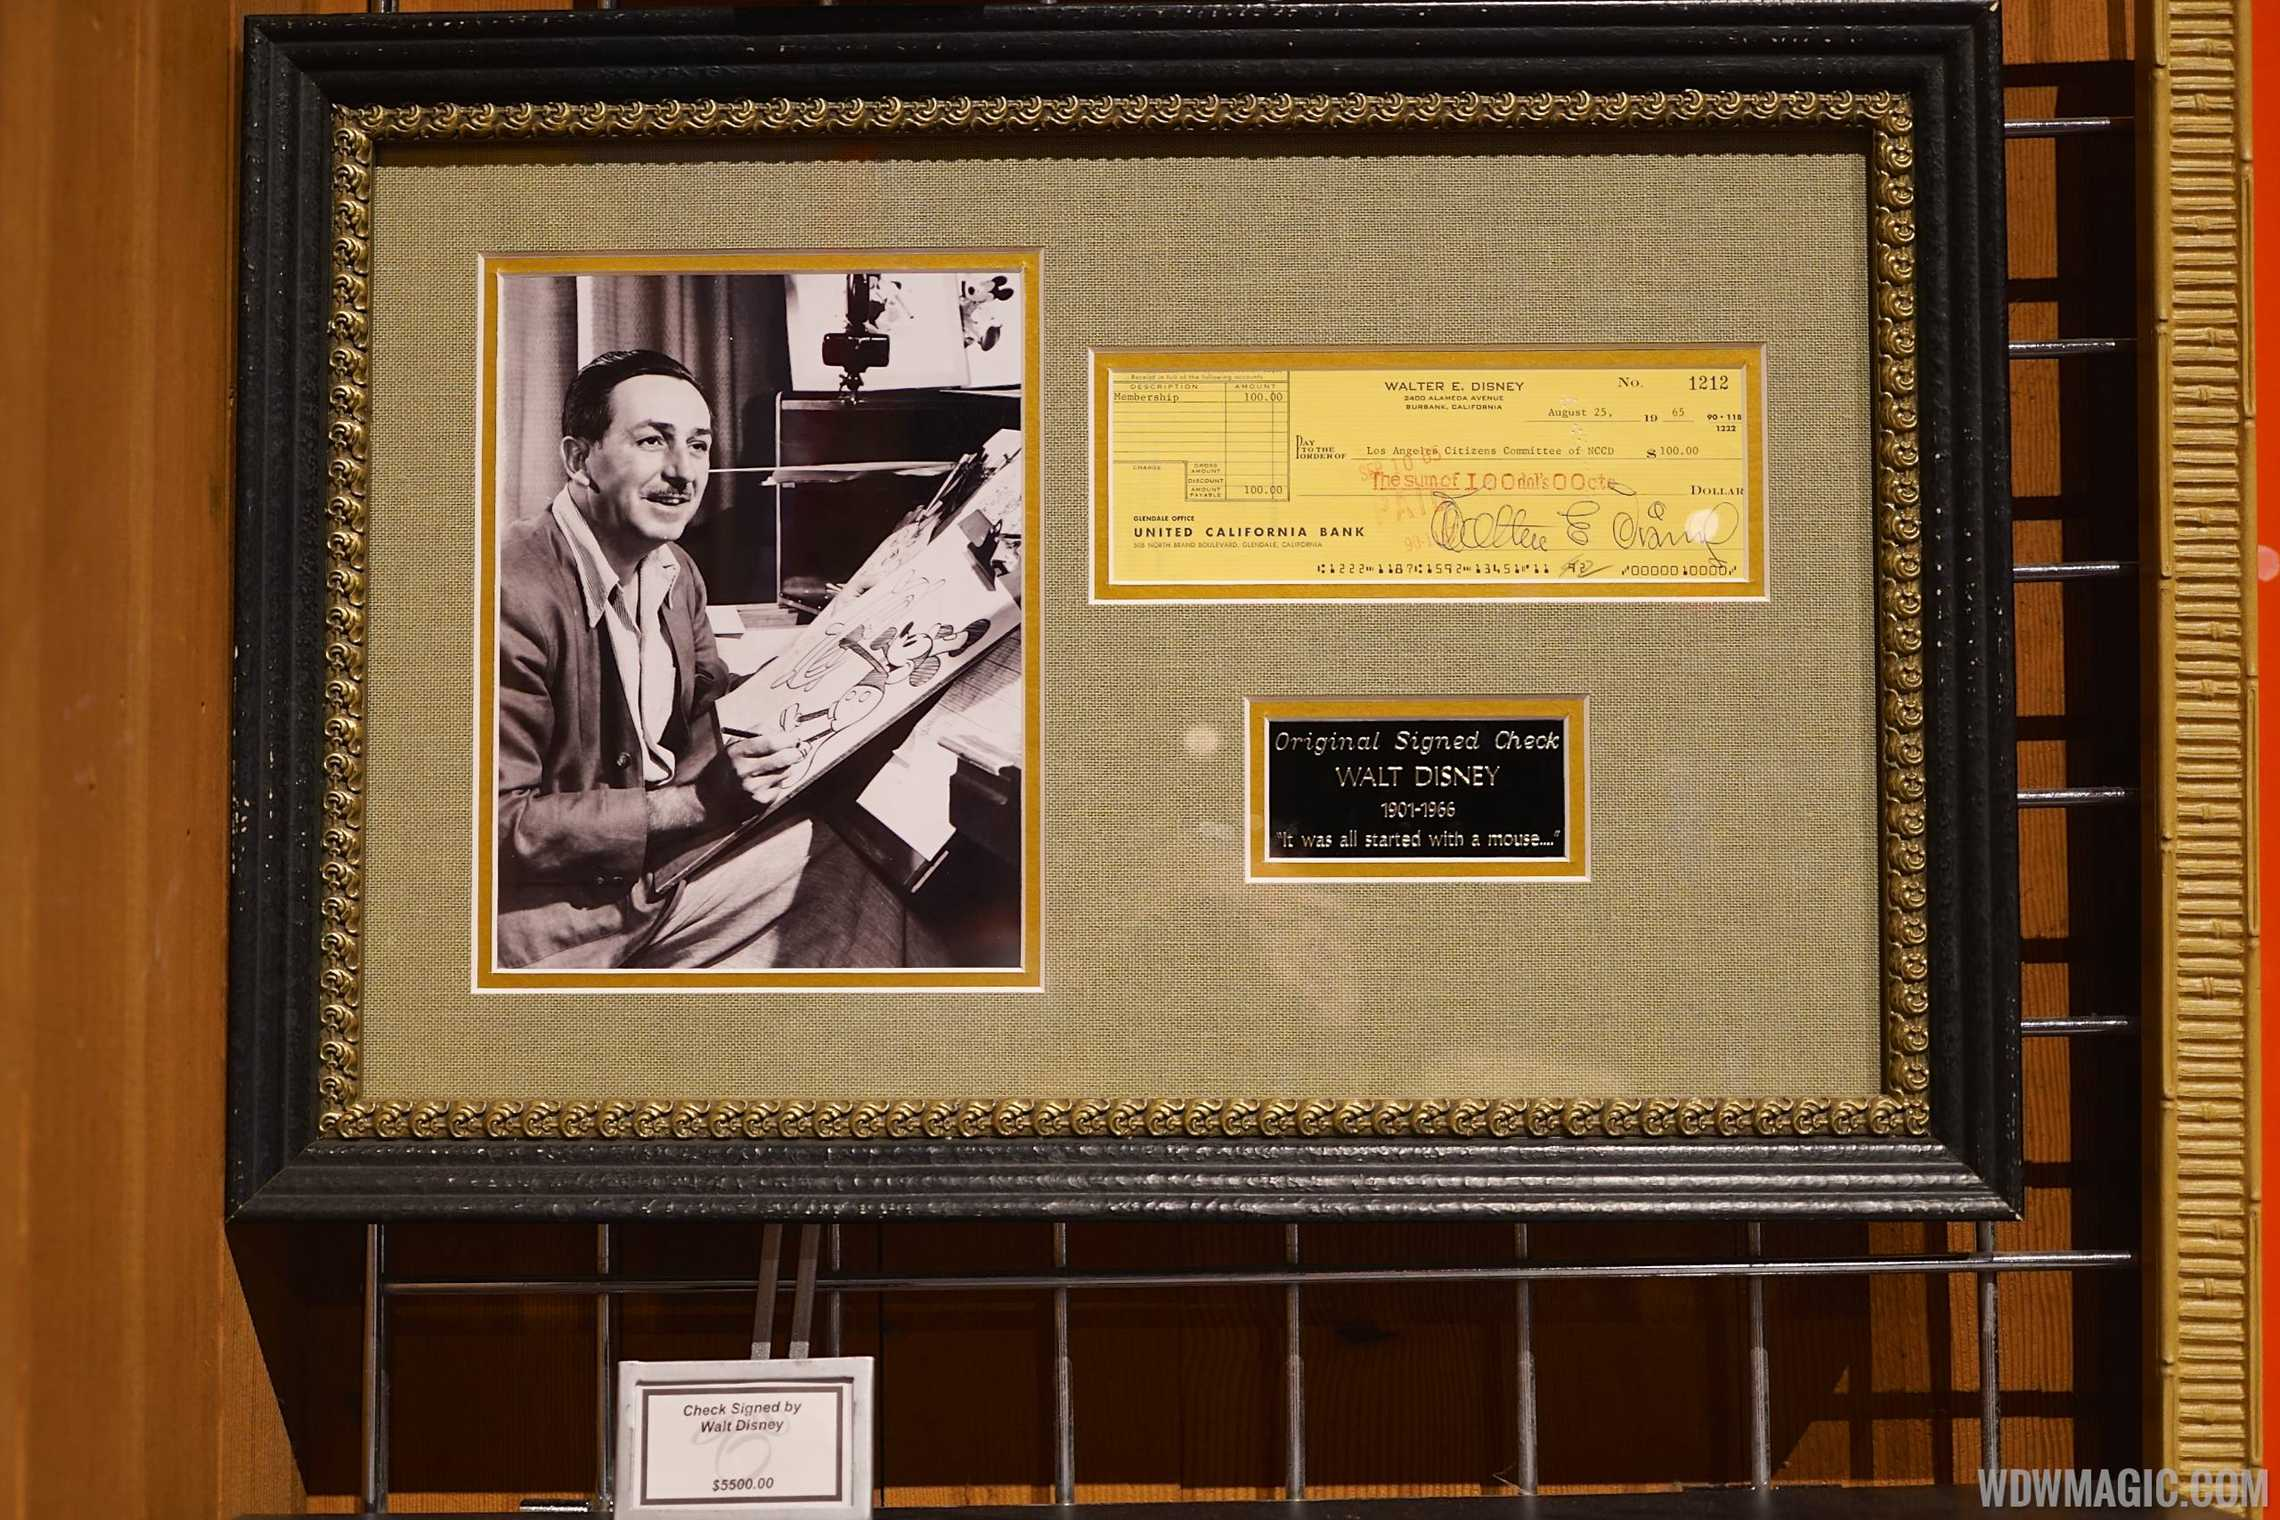 The Showcase Shop - Walt Disney autograph